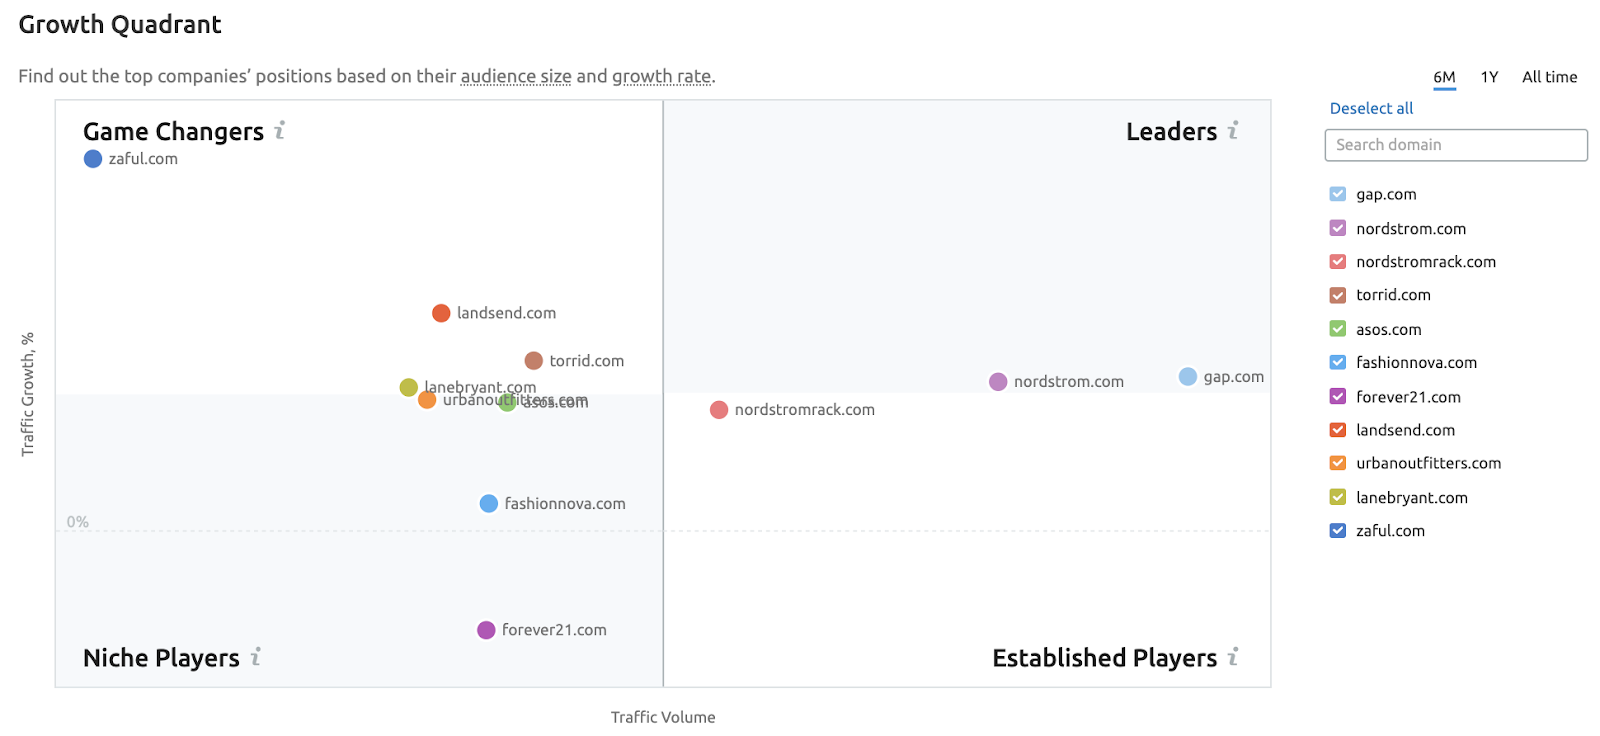 Potencial de mercado - Growth quadrant